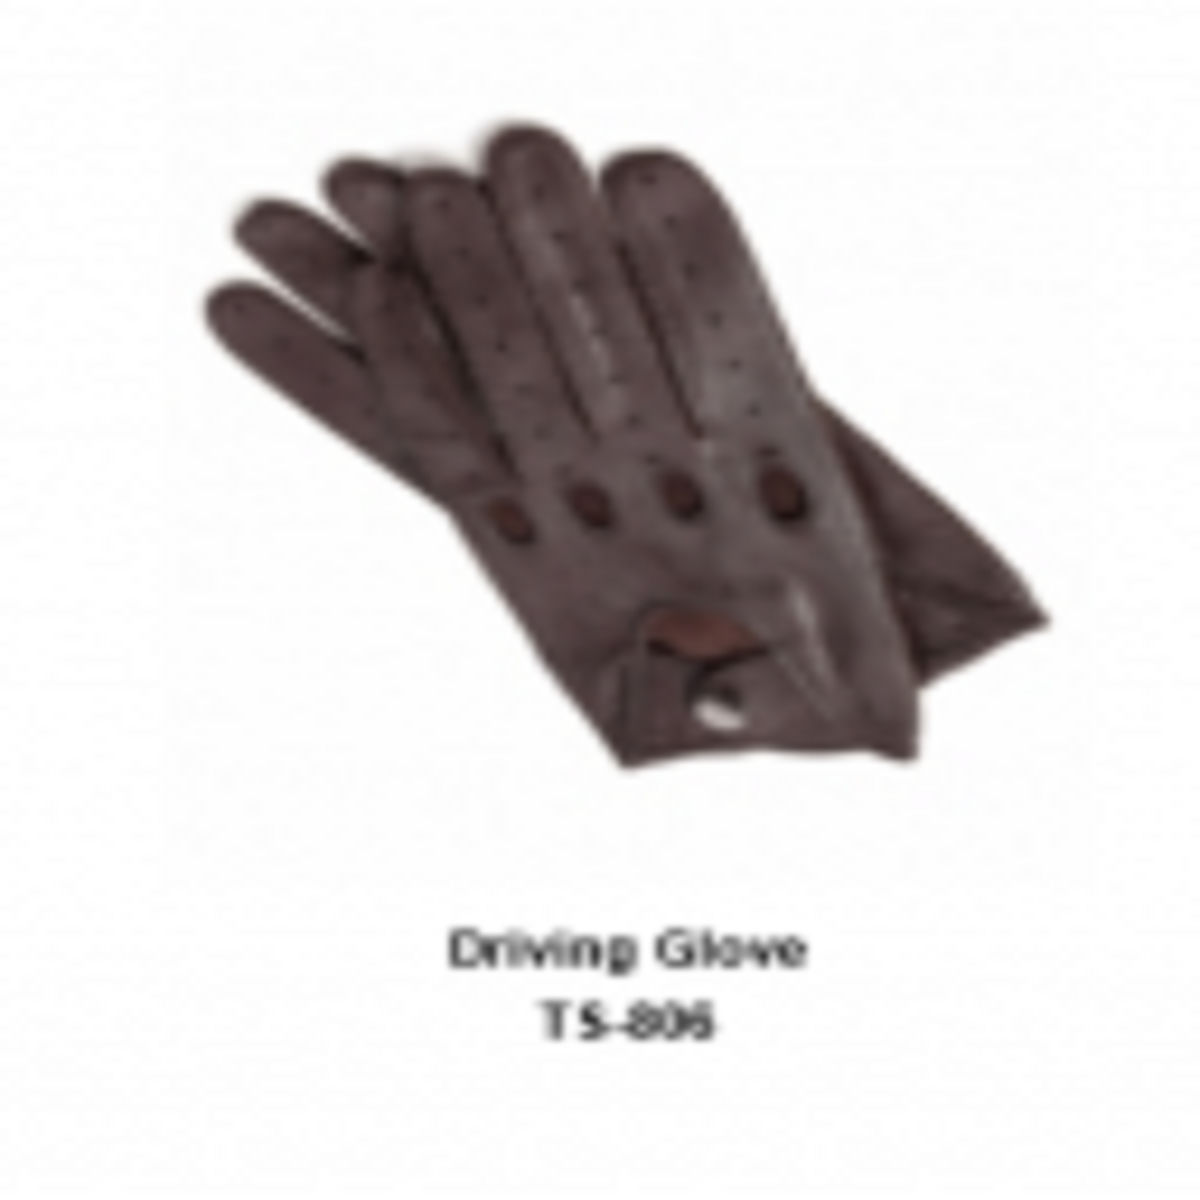 Leather Men's Fashion Driving Gloves Model No. TSI 806